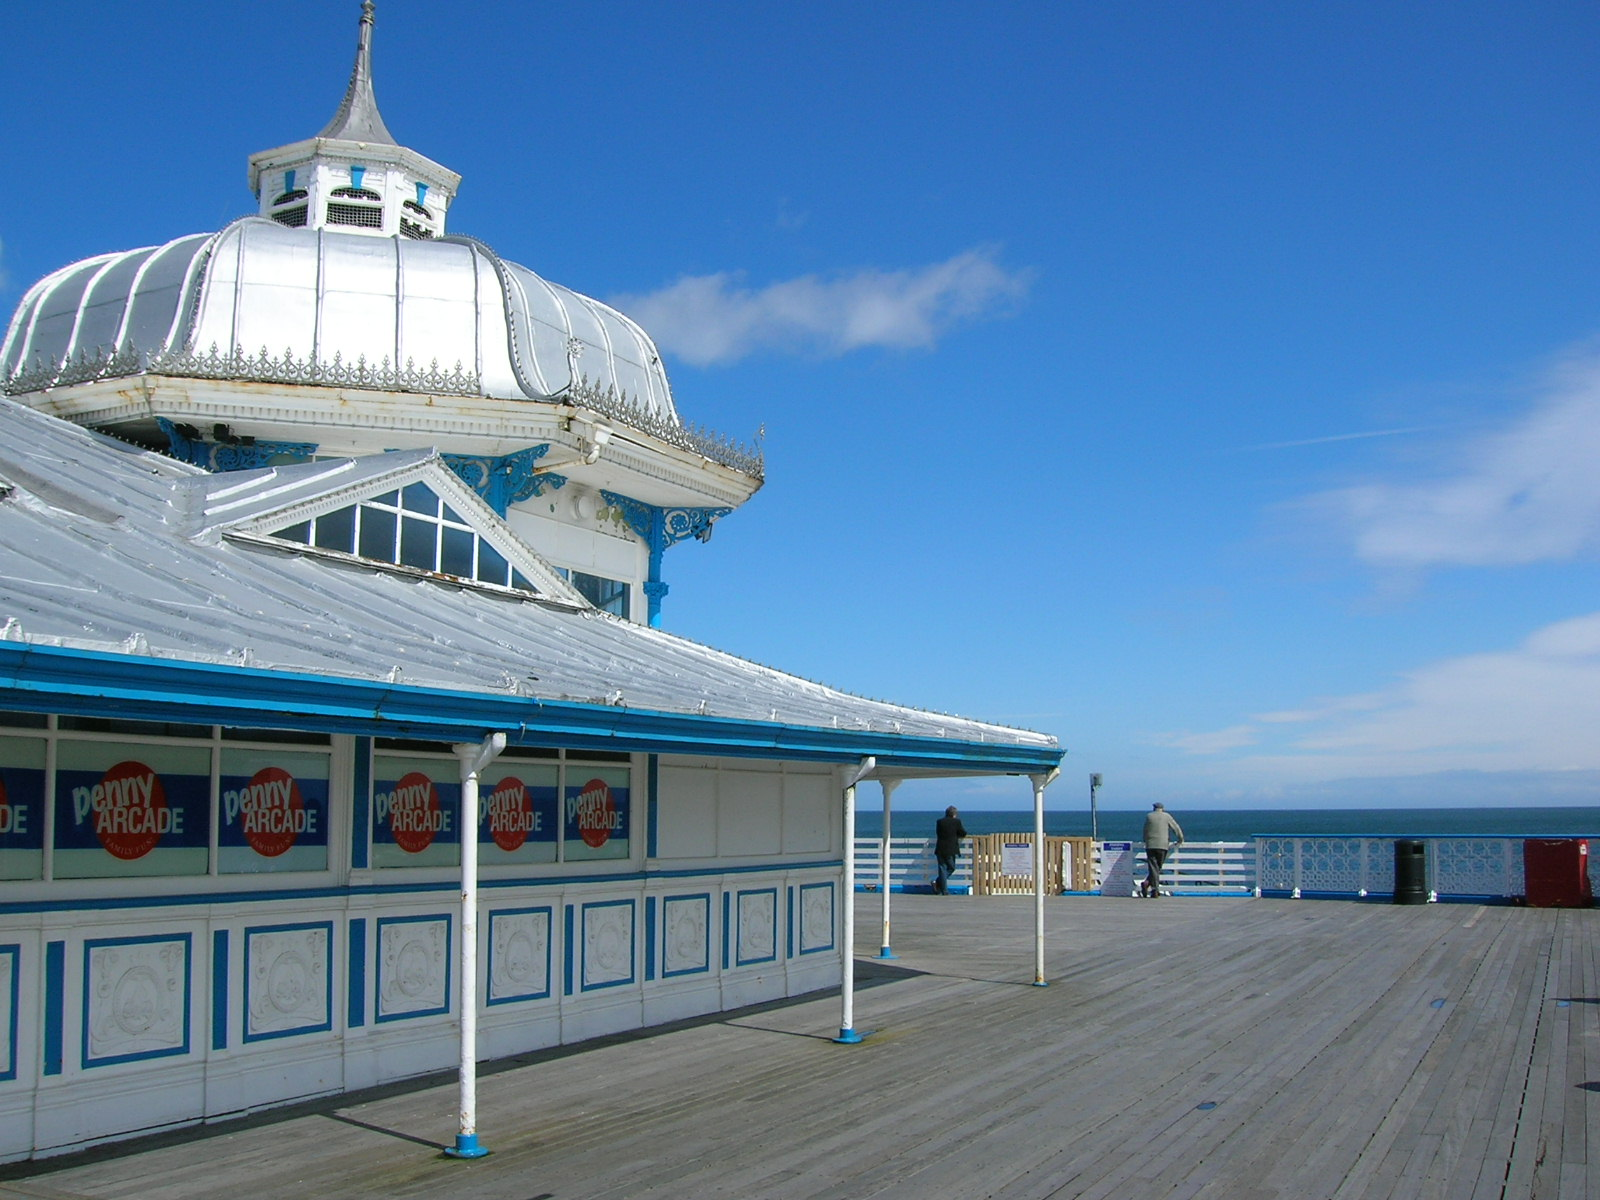 The End Of The Pier